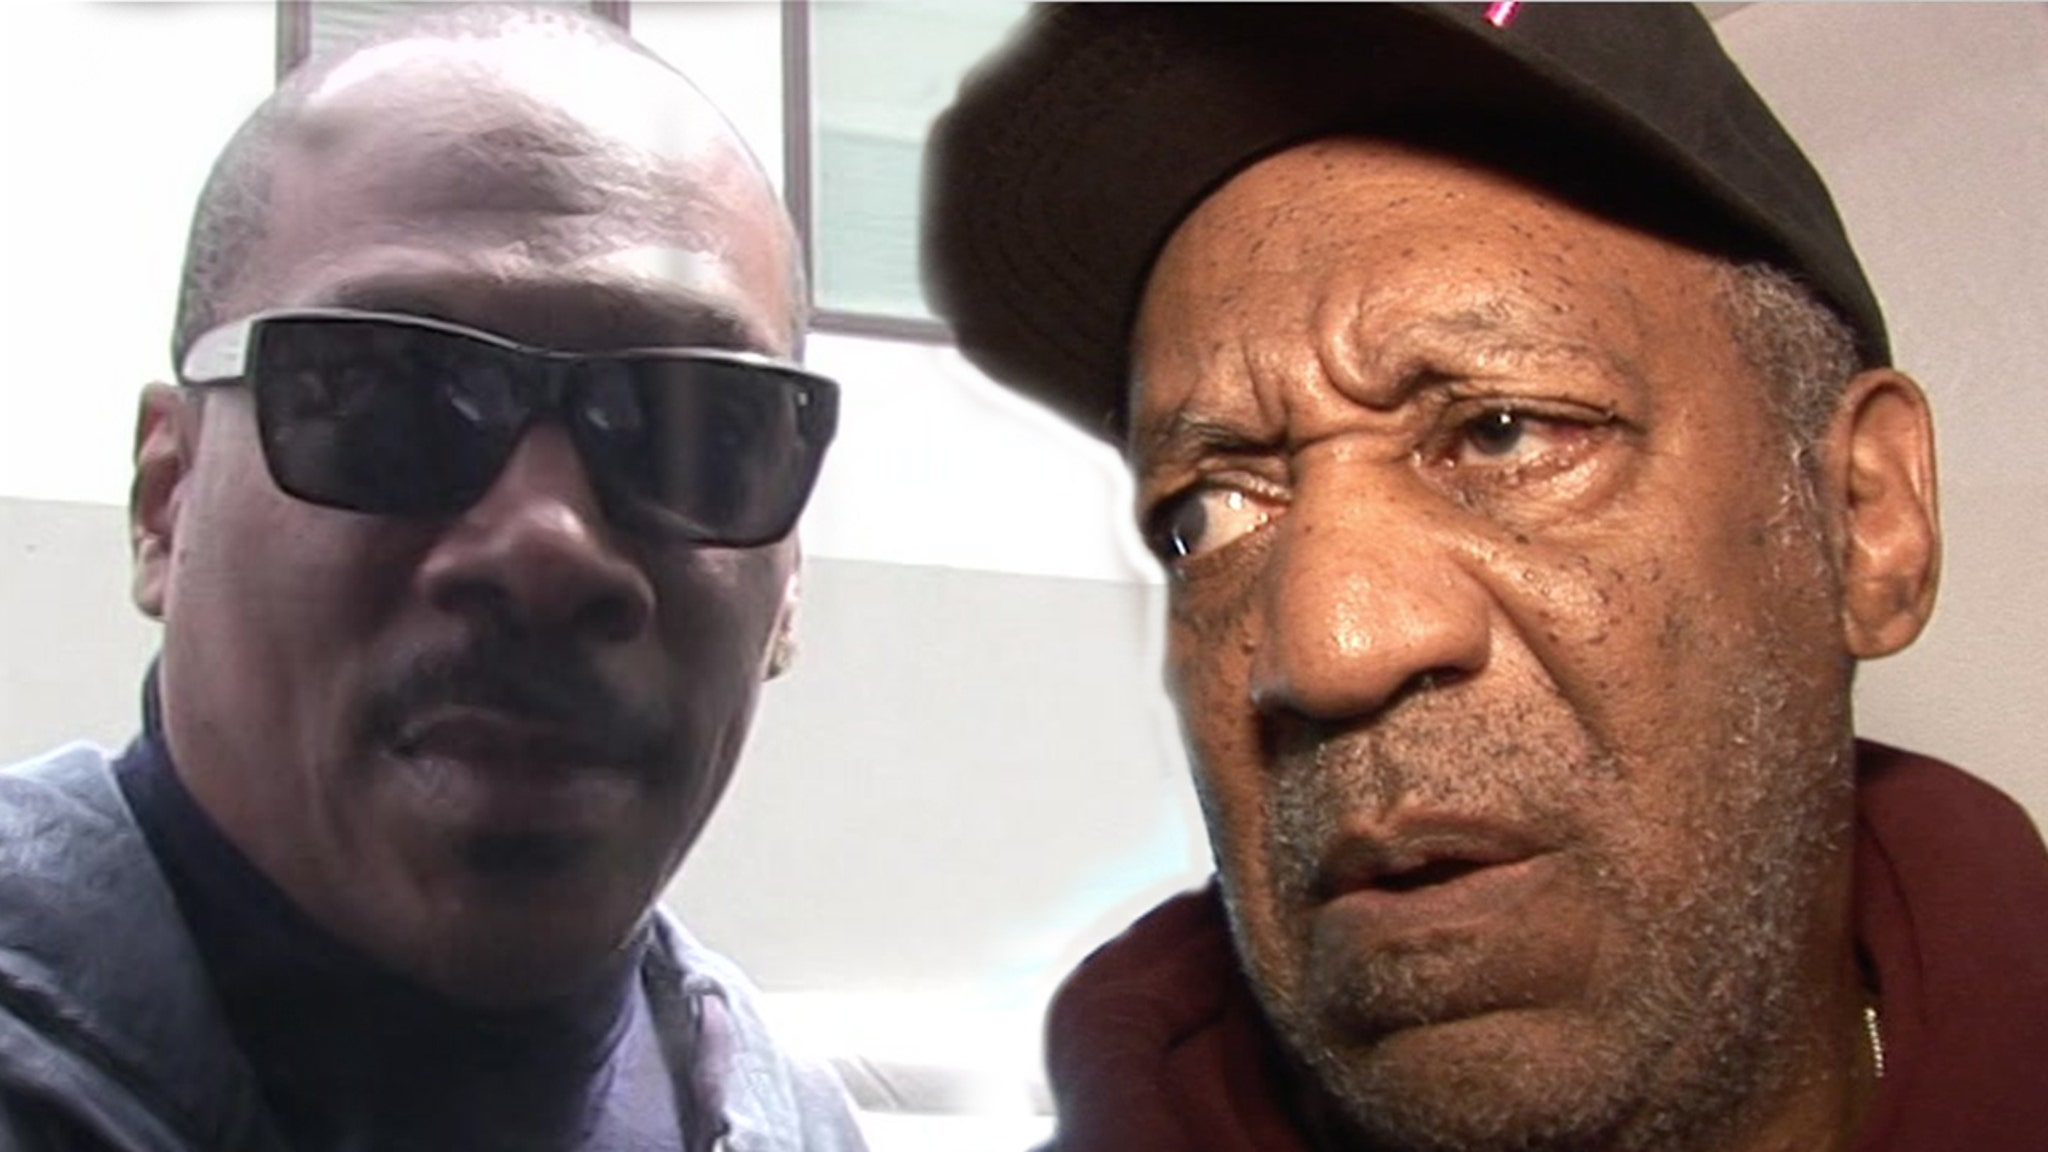 Bill Cosby Slams Eddie Murphy's 'SNL' Joke, Calls Him 'Hollywood Slave'